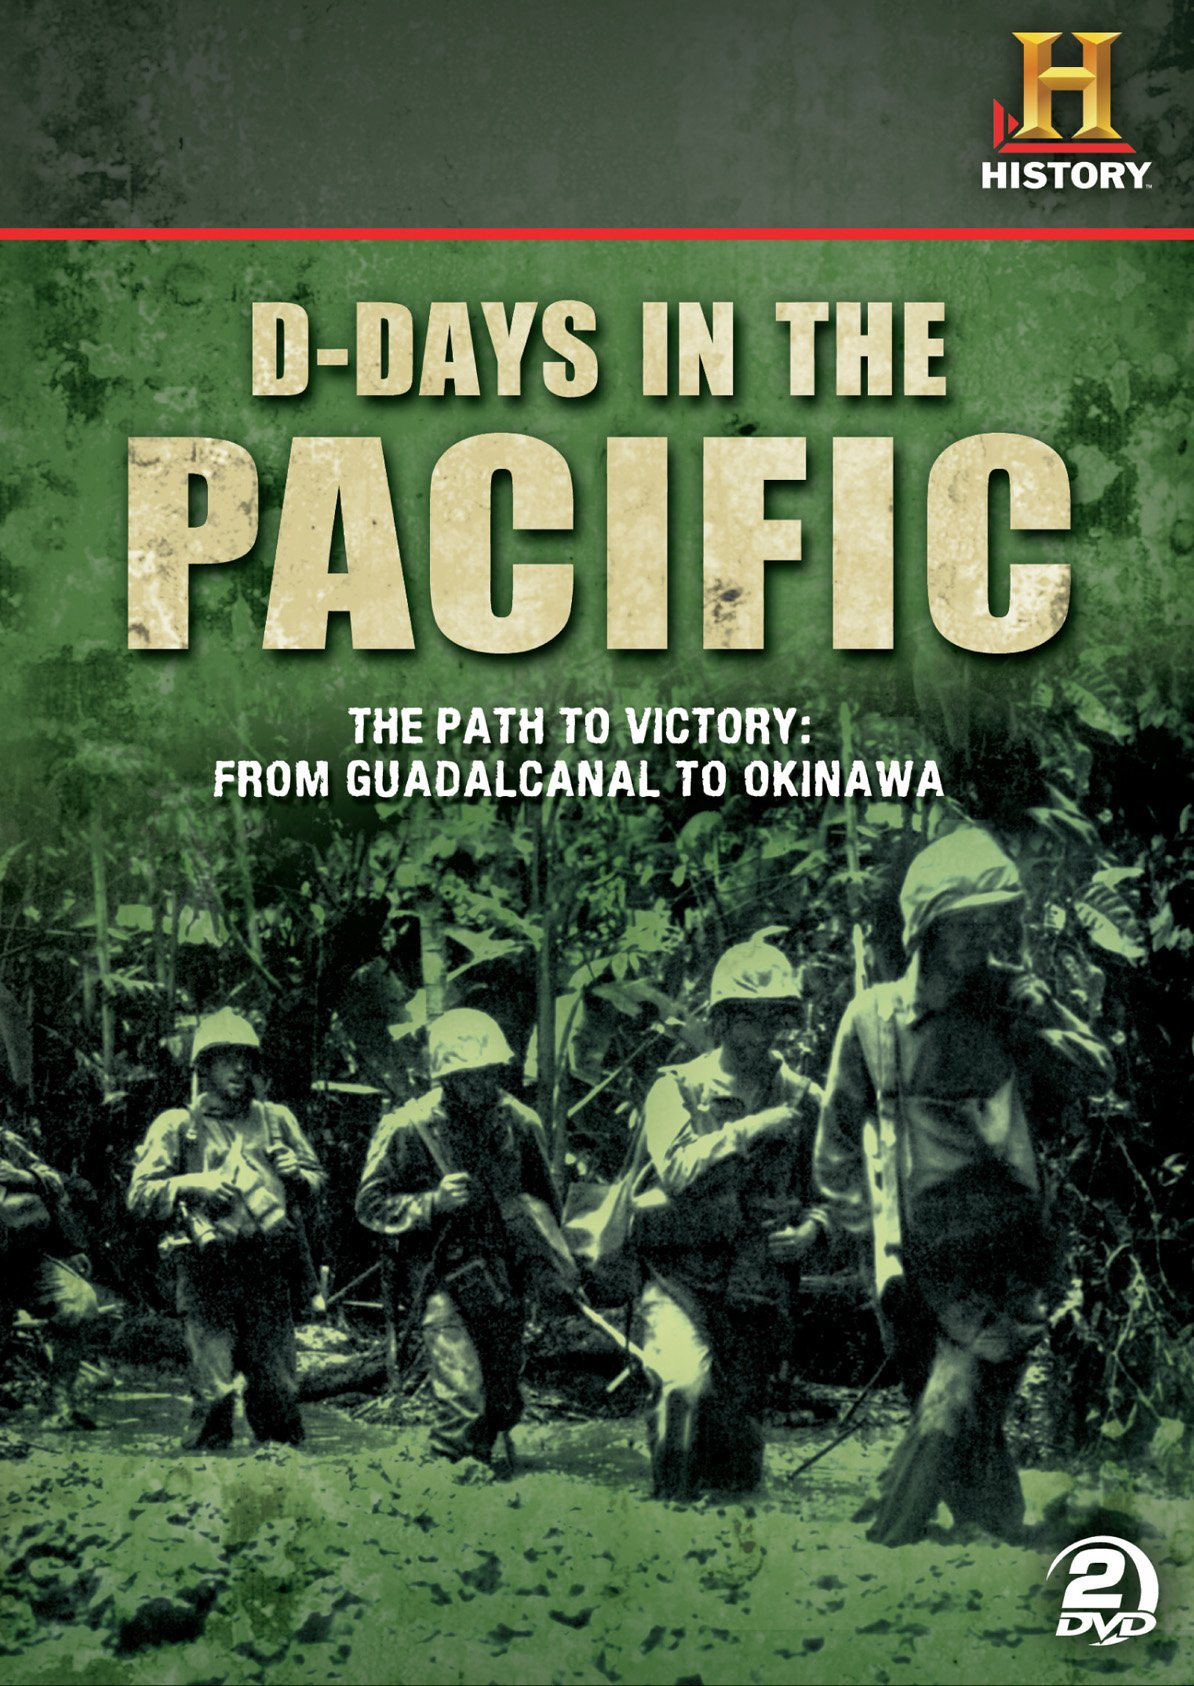 D-Days in the Pacific: The Path to Victory: From Guadalcanal to Okinawa (DVD)